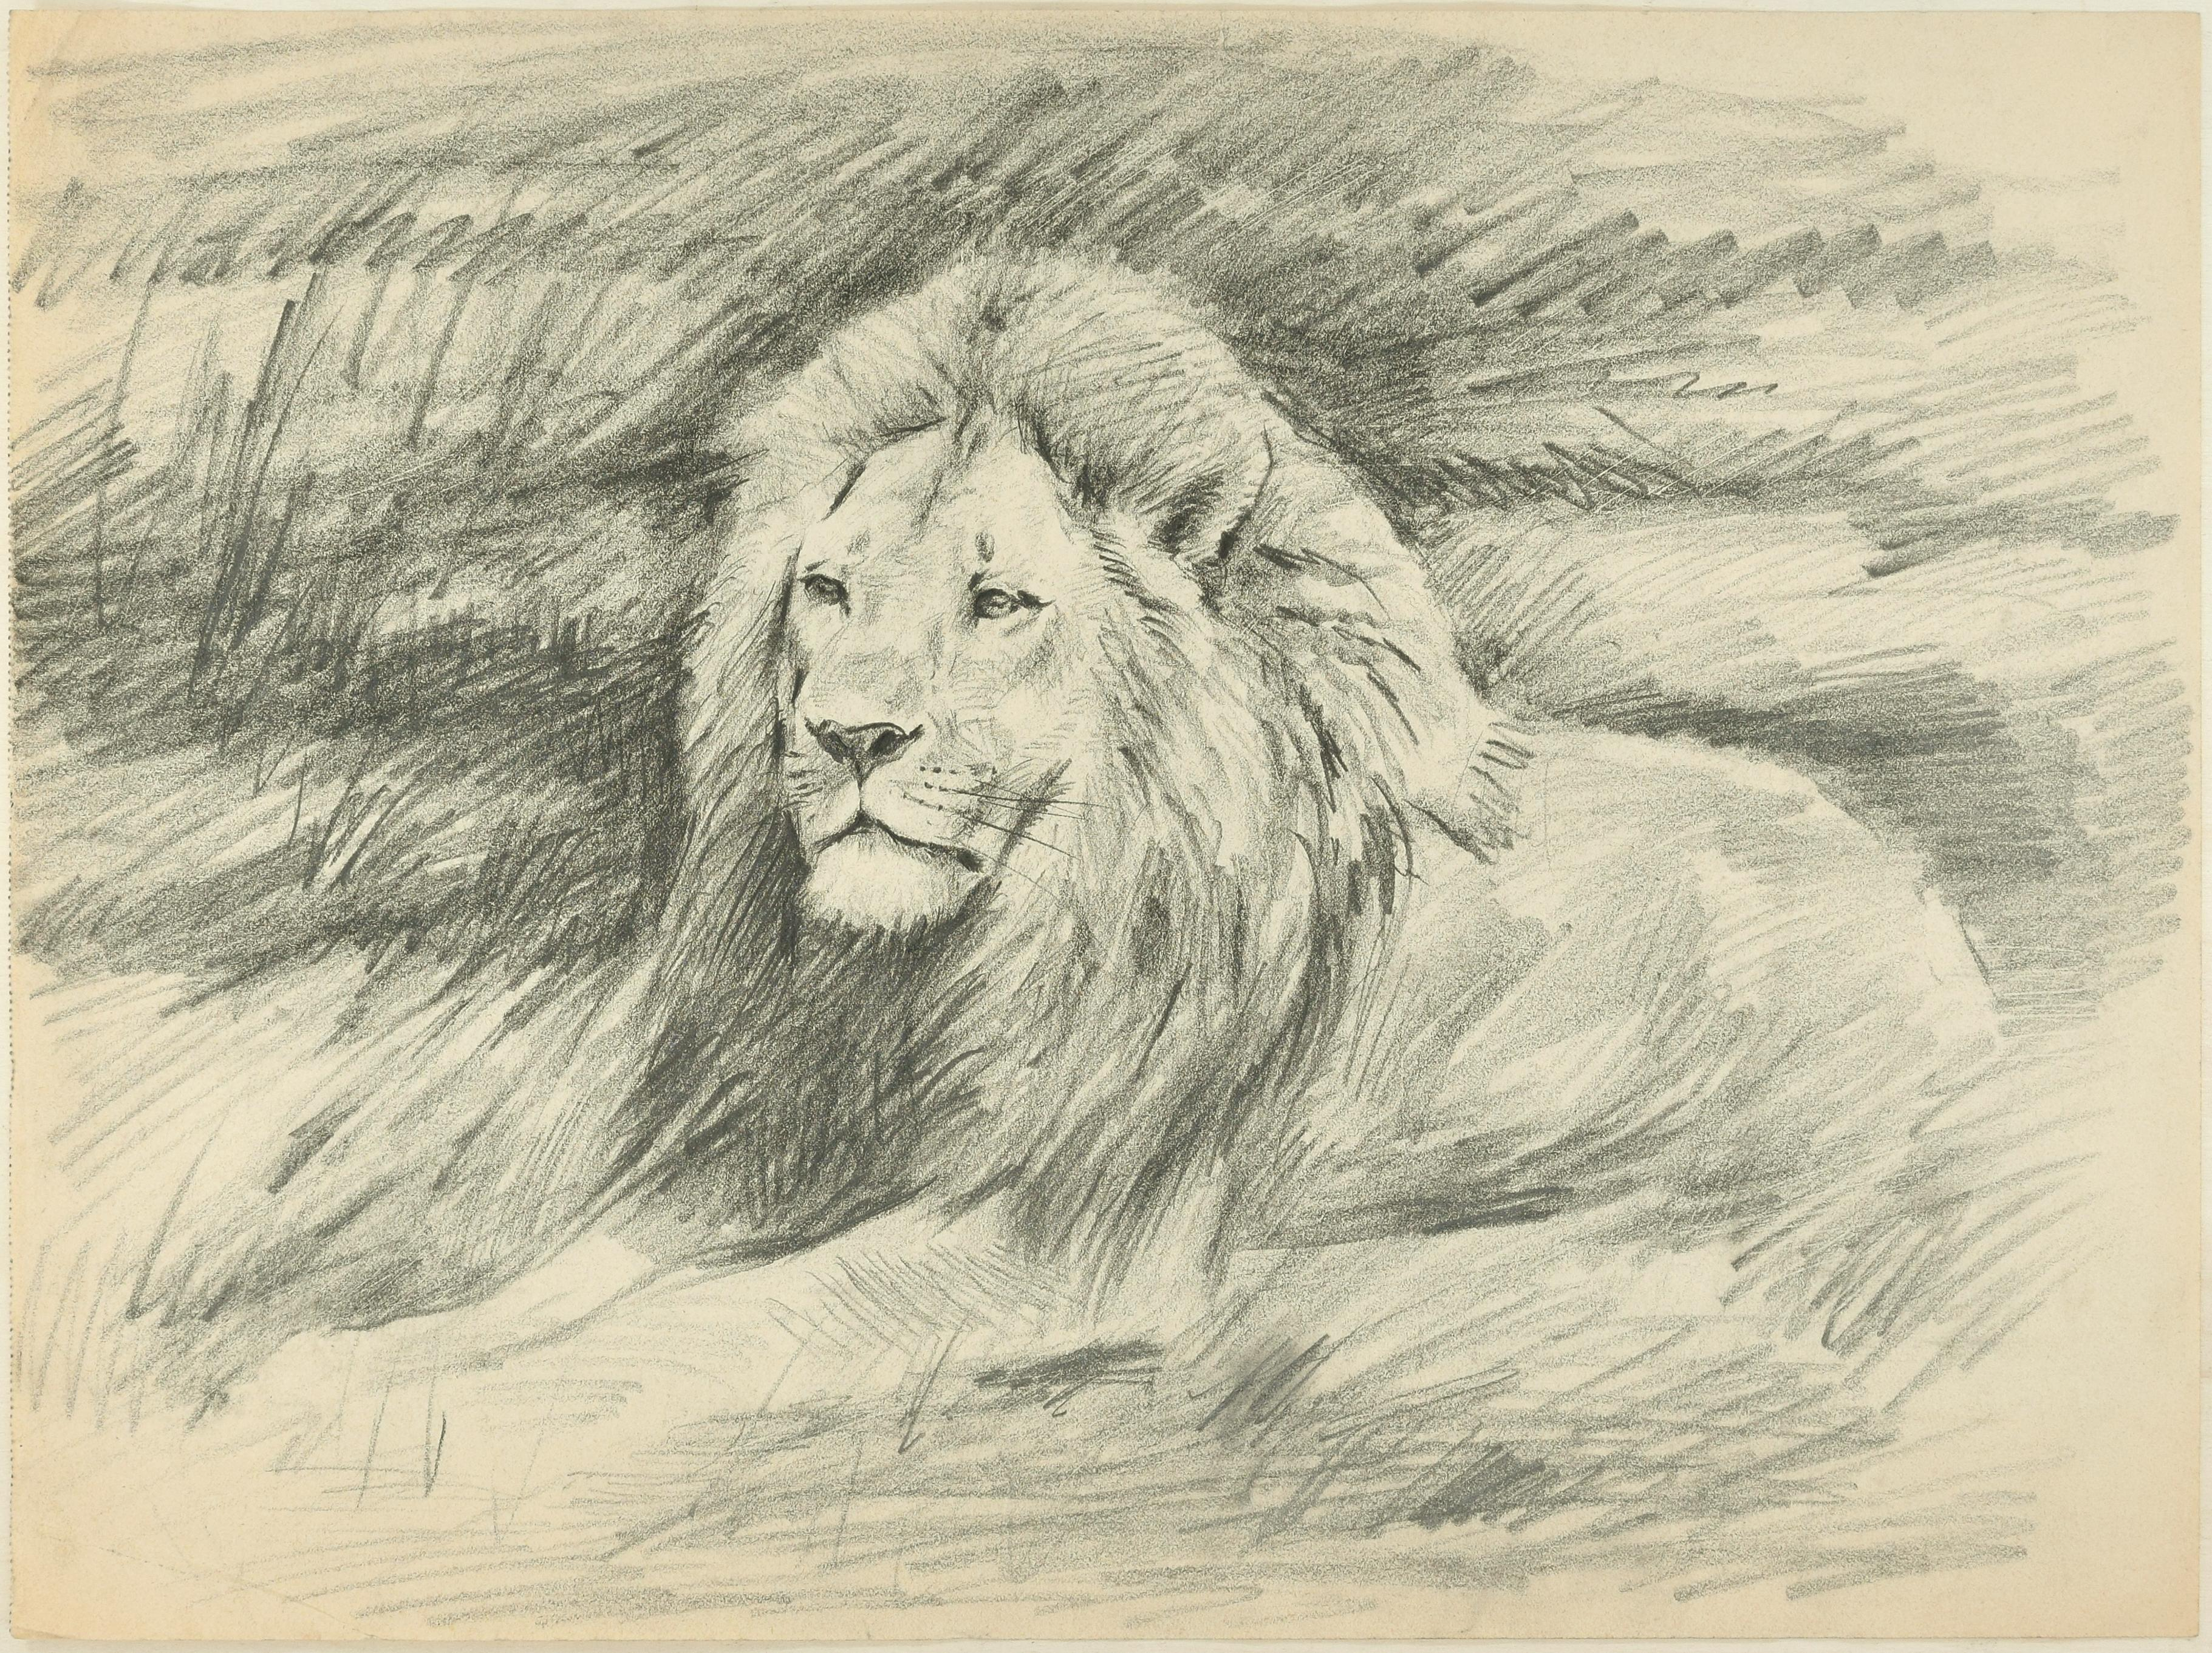 Shape of a lion original pencil drawing by willy lorenz 1940s